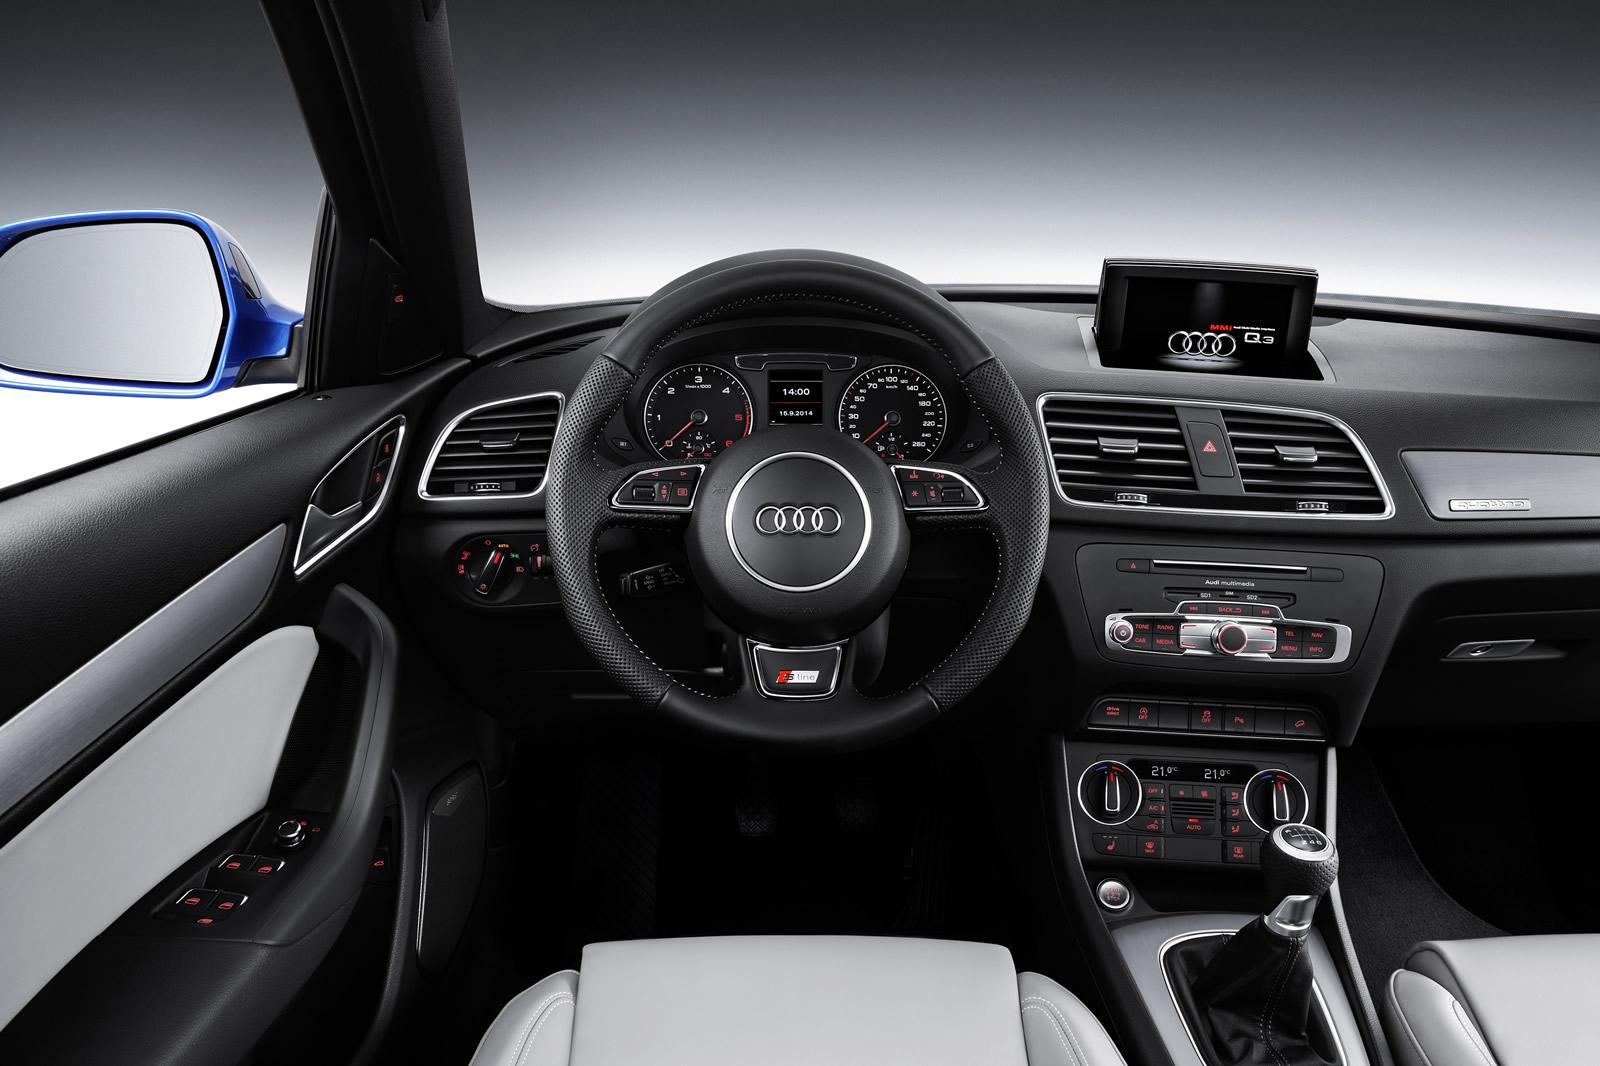 2015 audi q3 facelift s line dashboard 1. Black Bedroom Furniture Sets. Home Design Ideas